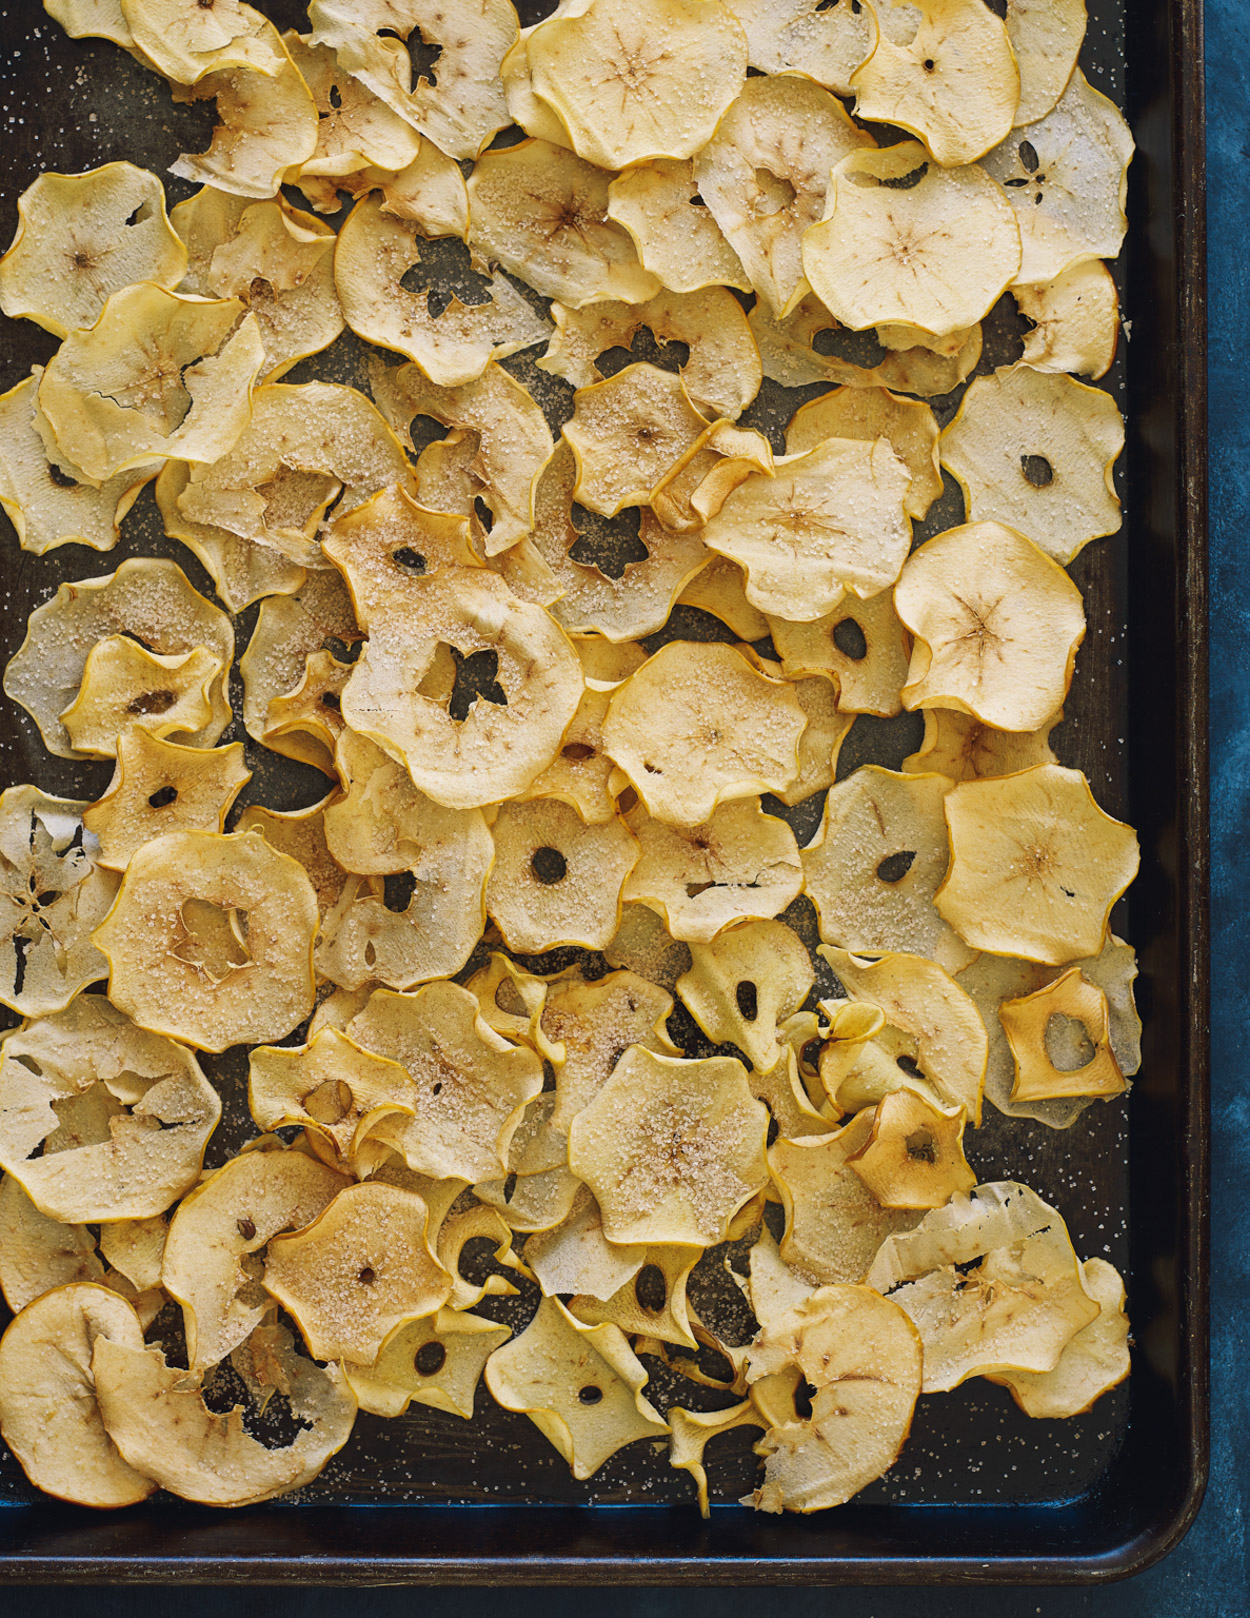 Los Angeles Food photographer - Cooking in Season Cookbook Apple Crisps  by Ray Kachatorian